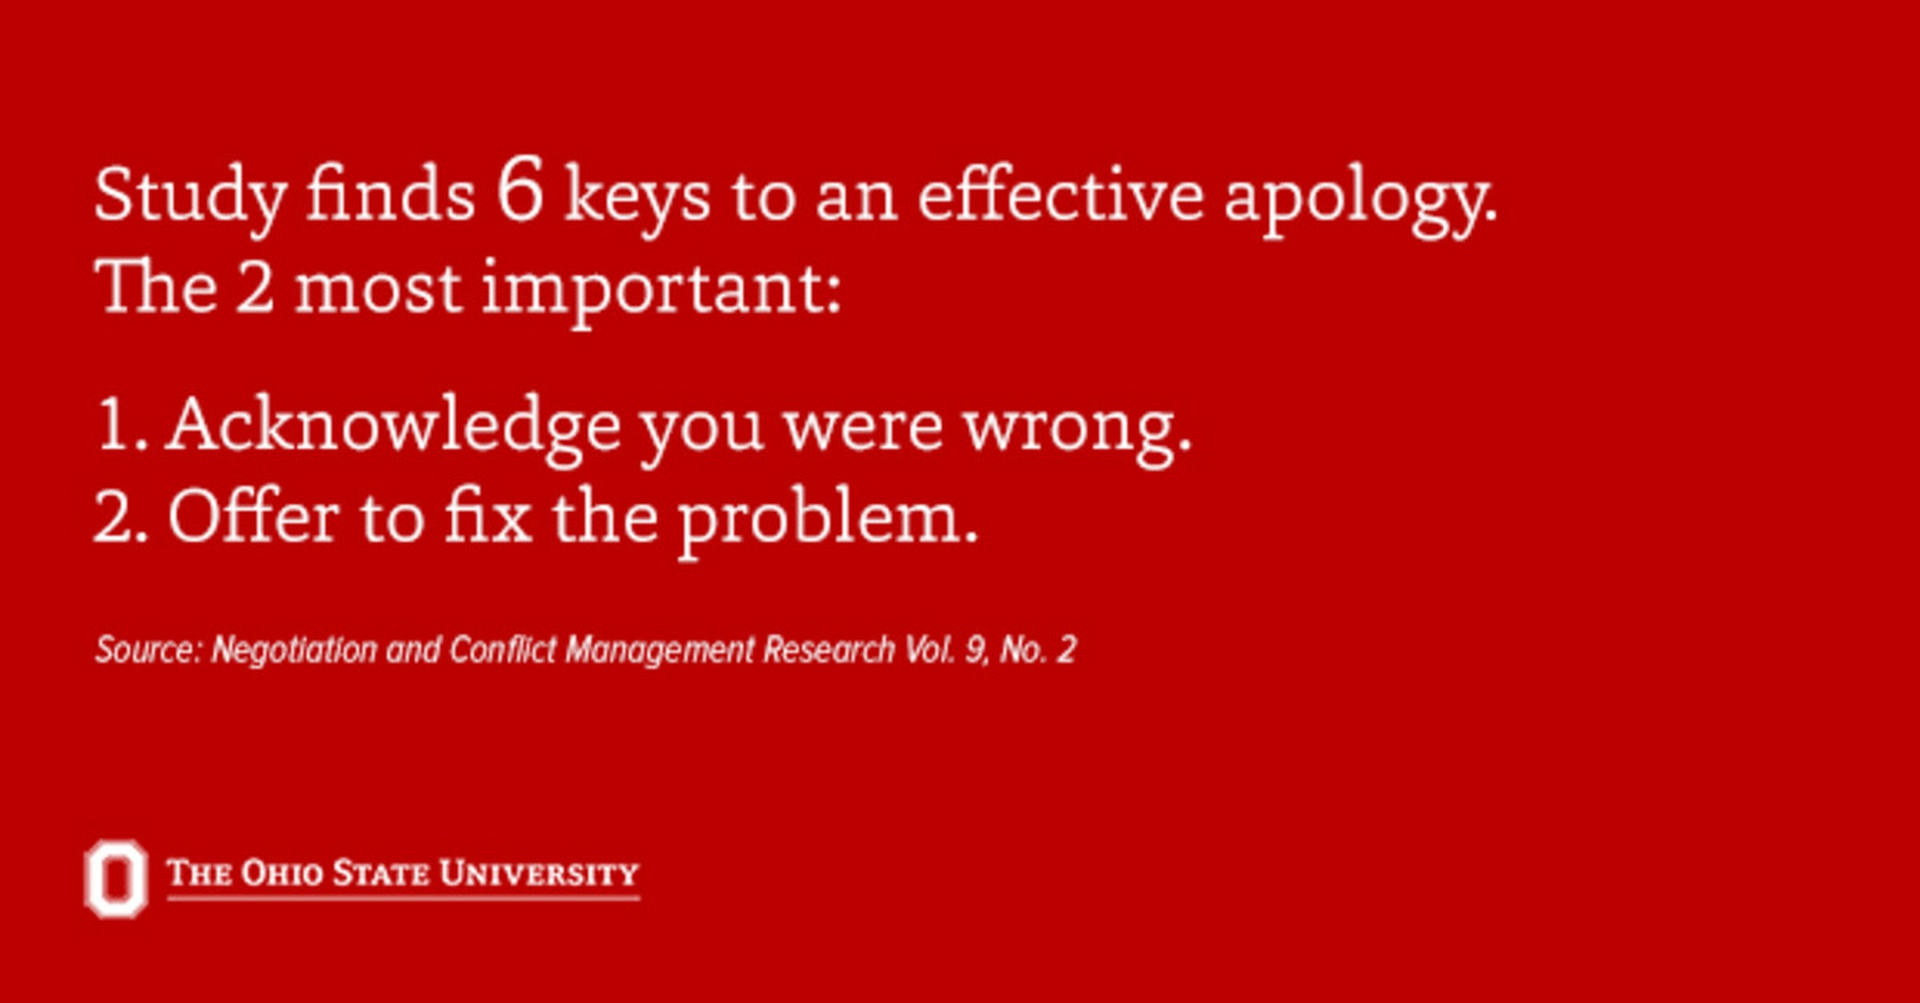 While the best apologies contained all six elements, not all of these components are equal, the study found.